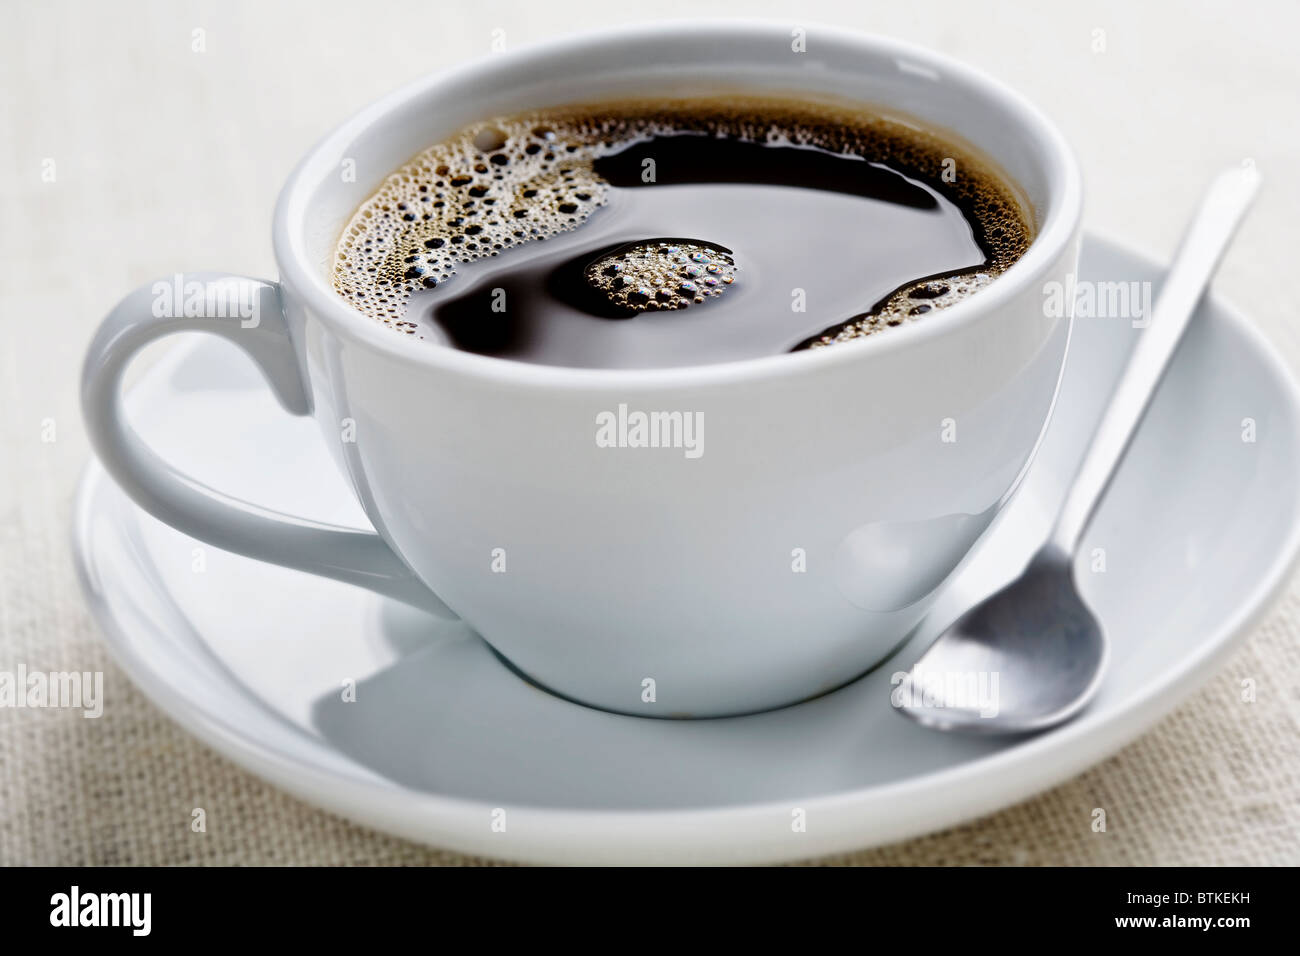 cup of freshly brewed black coffee, focus is on the middle bubbles - Stock Image